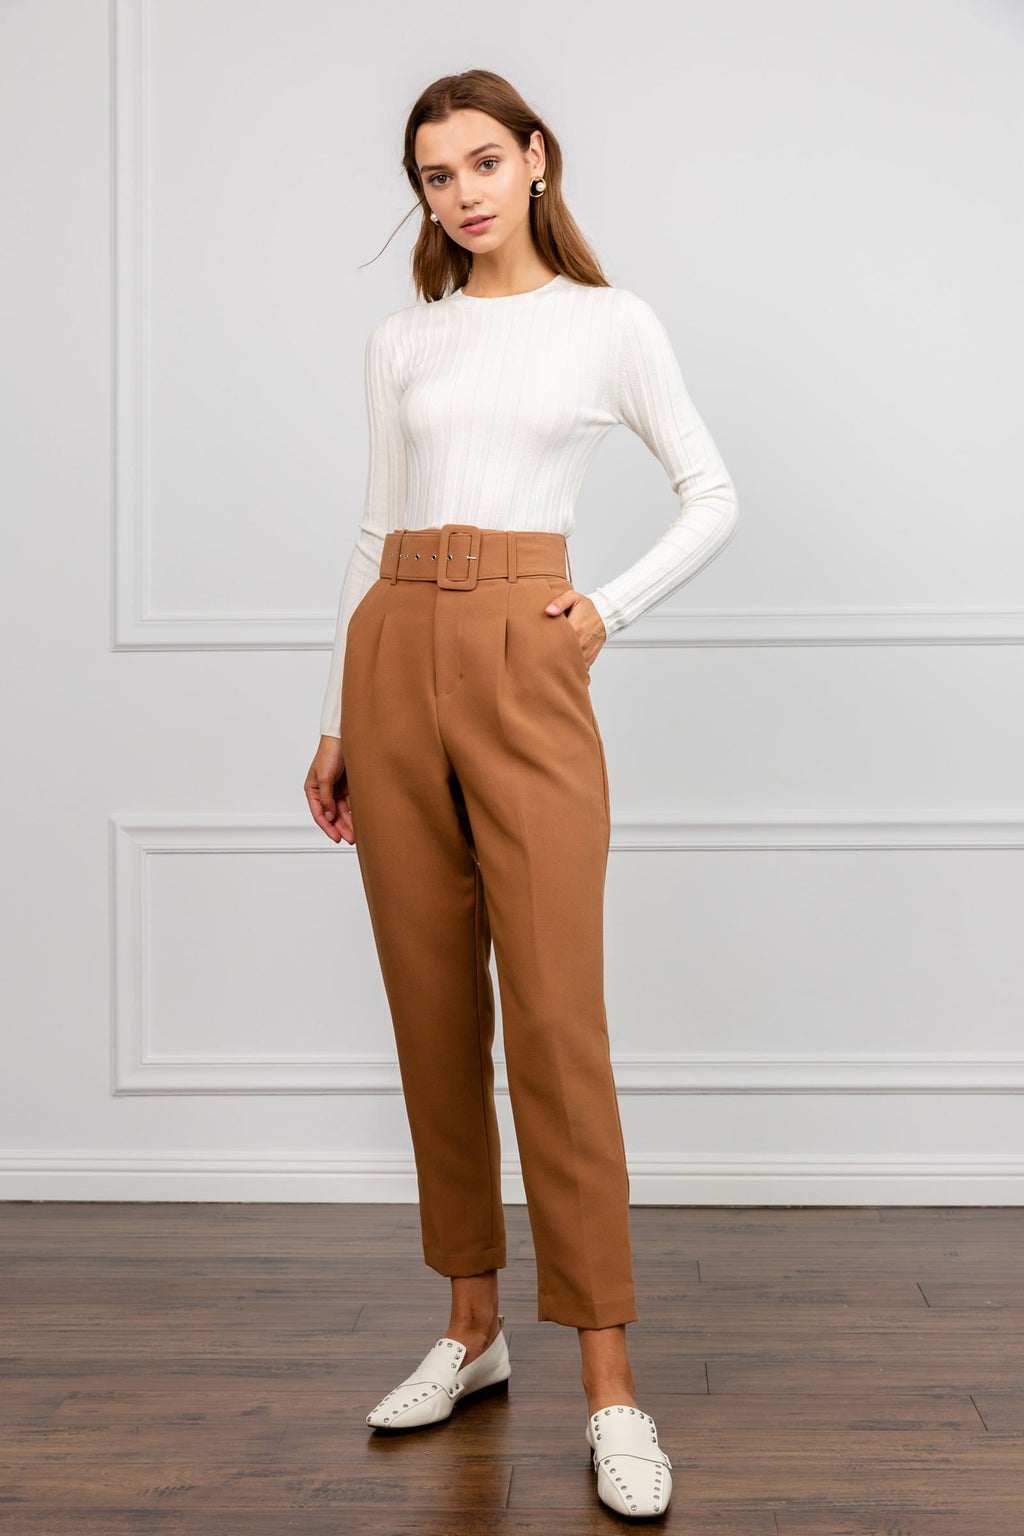 Brown High Waisted Work Pants | J.ING women's work wear